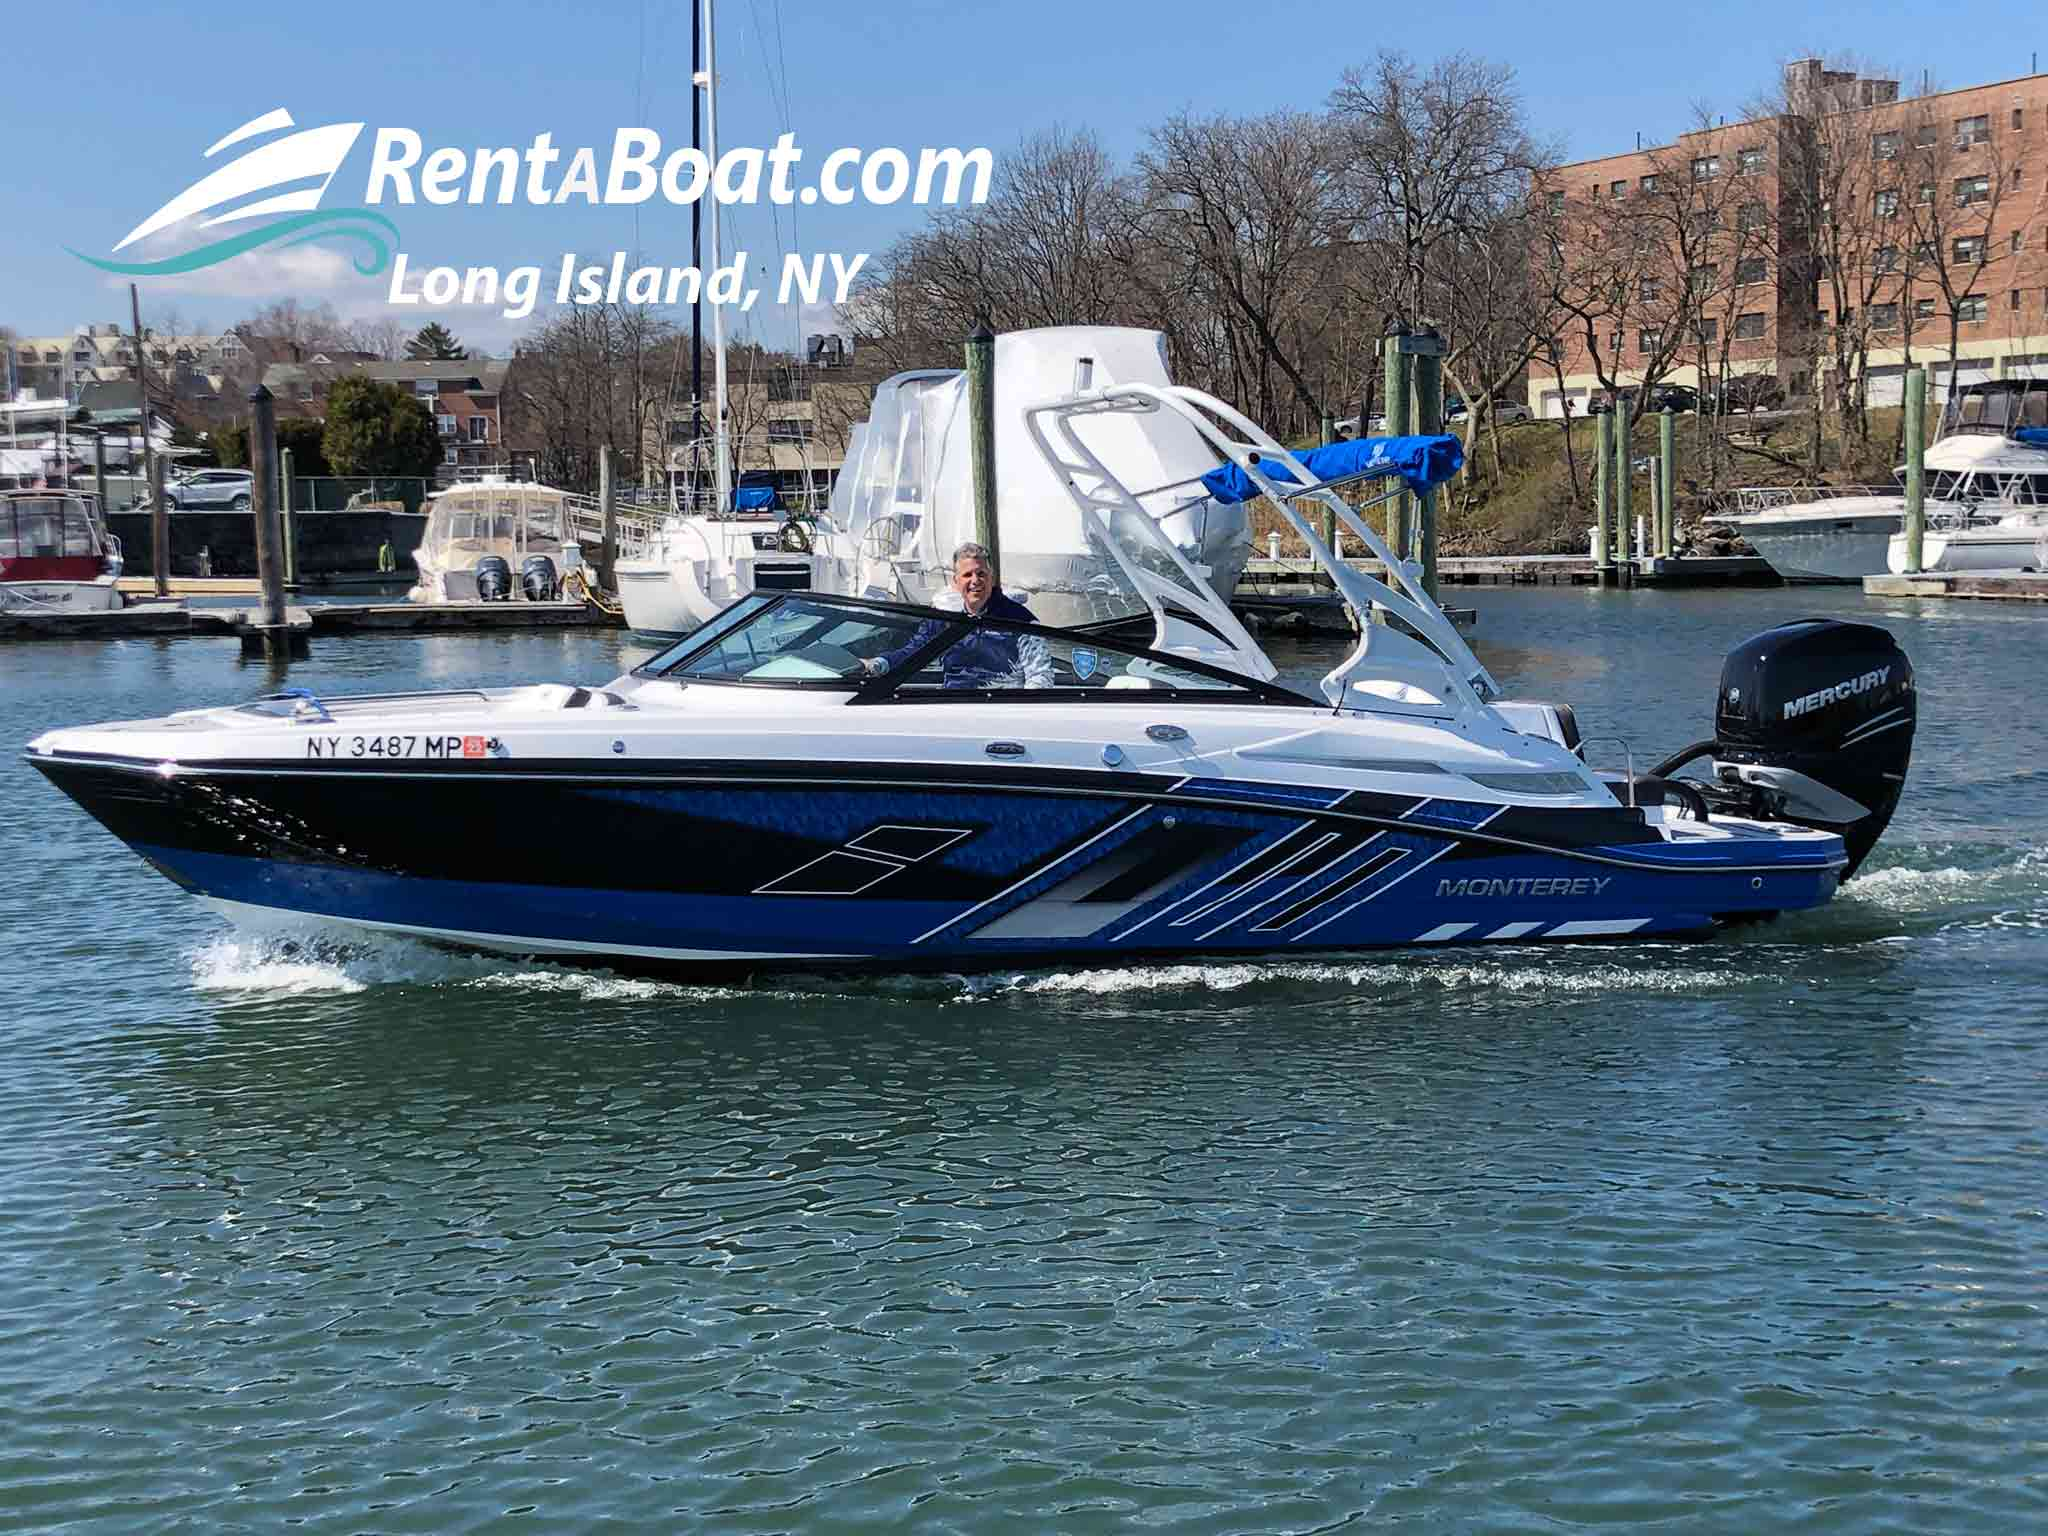 Front of boat Monterey m45 boat rentals New York NEW ROCHELLE / NEW YORK / LONG ISLAND / CITY ISLAN New York  Monterey M45 2019 25